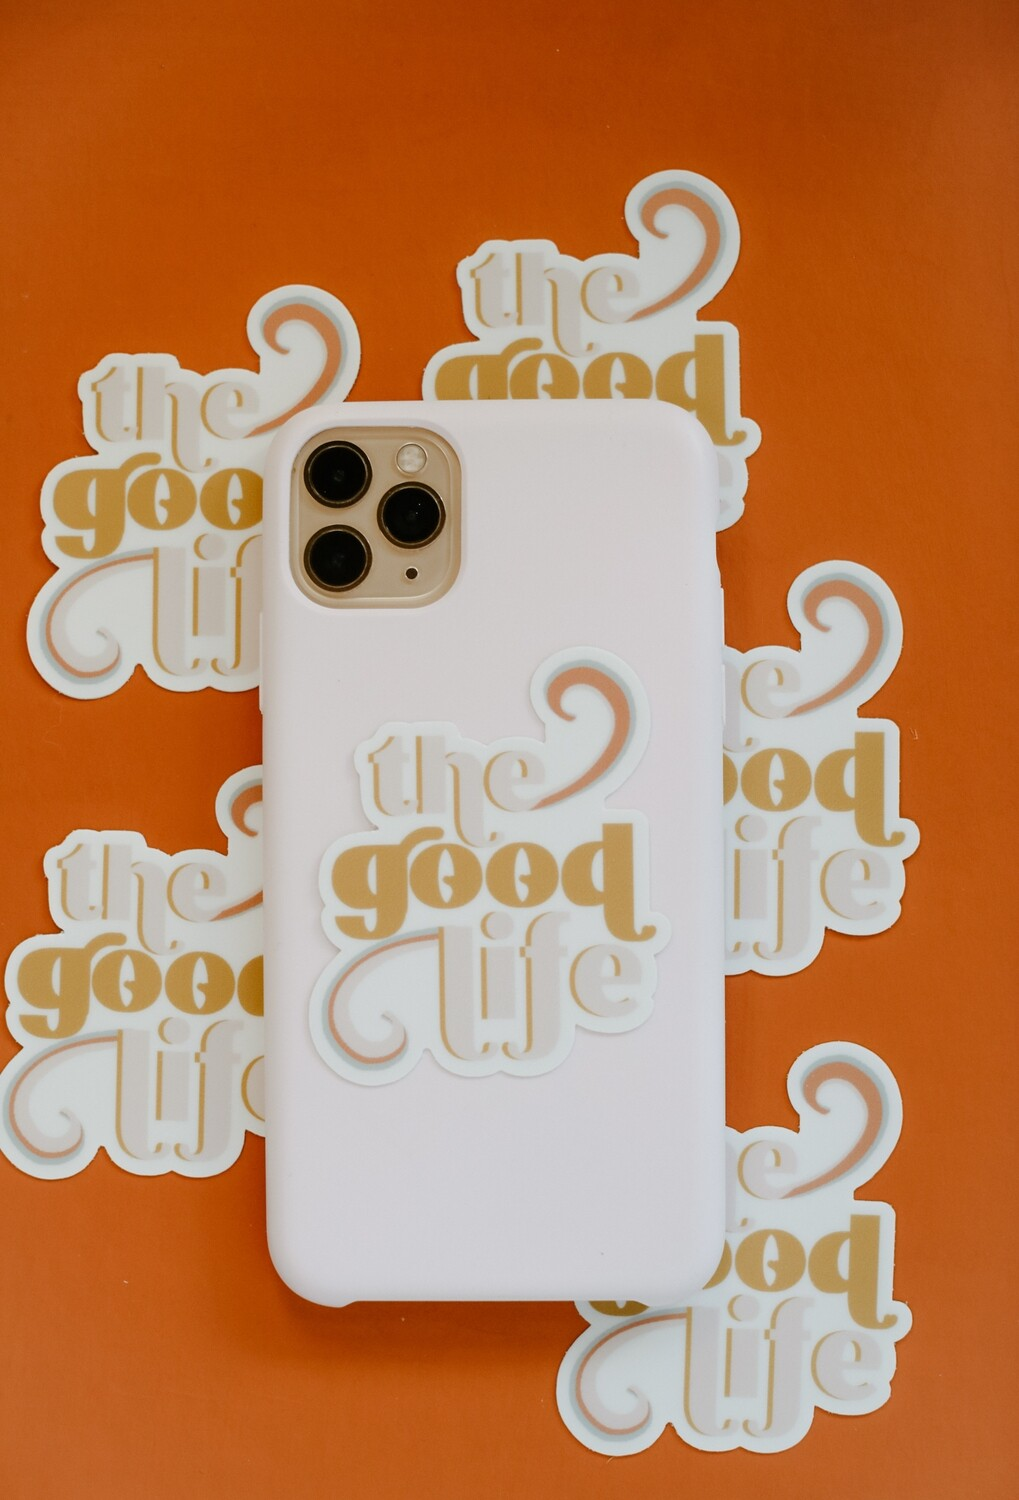 Good Life sticker